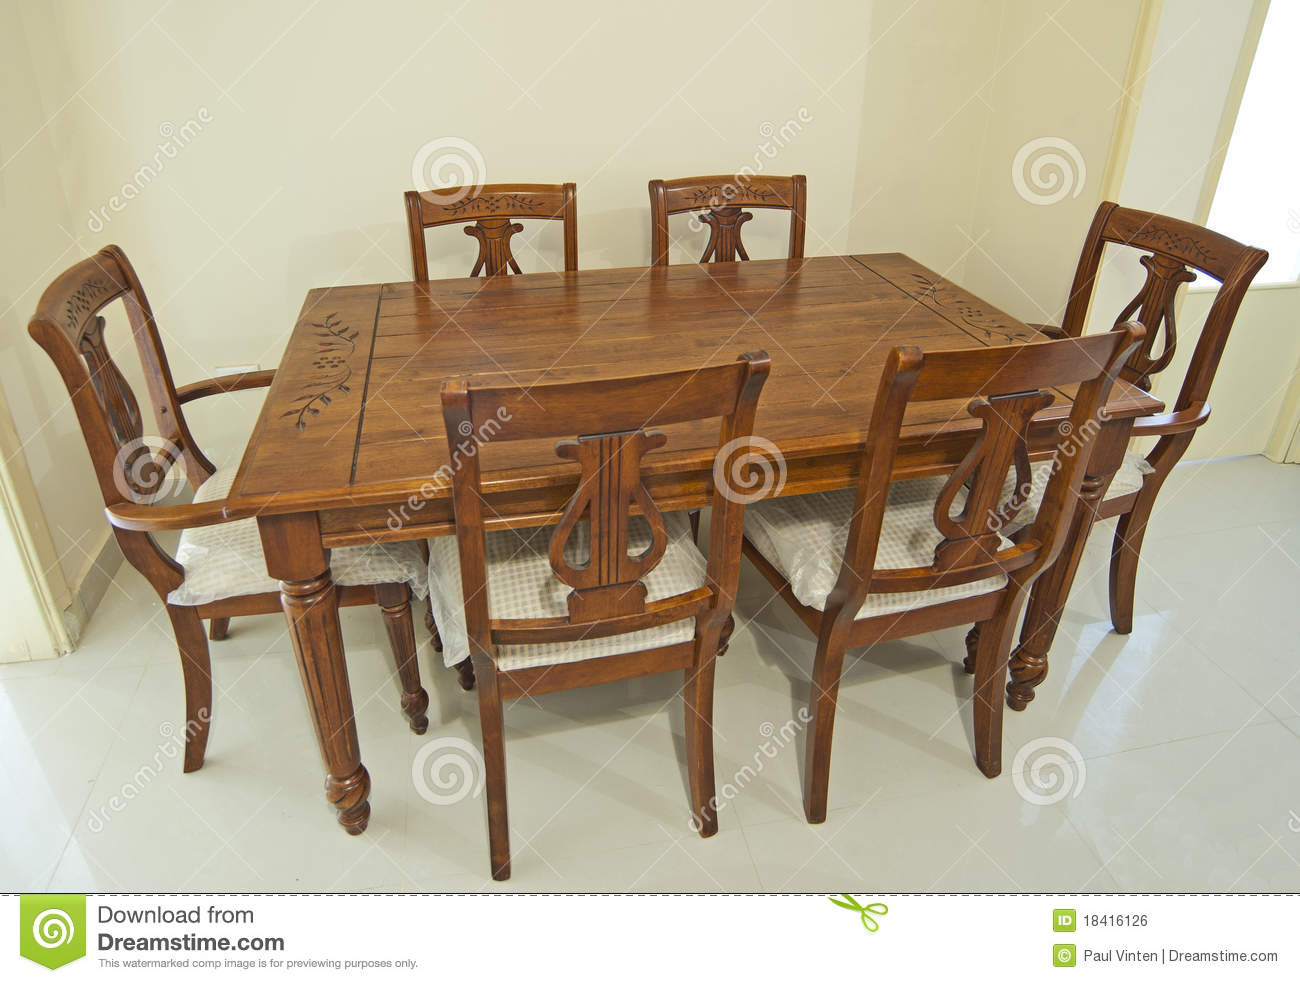 wooden dining tables and chairs photo - 6